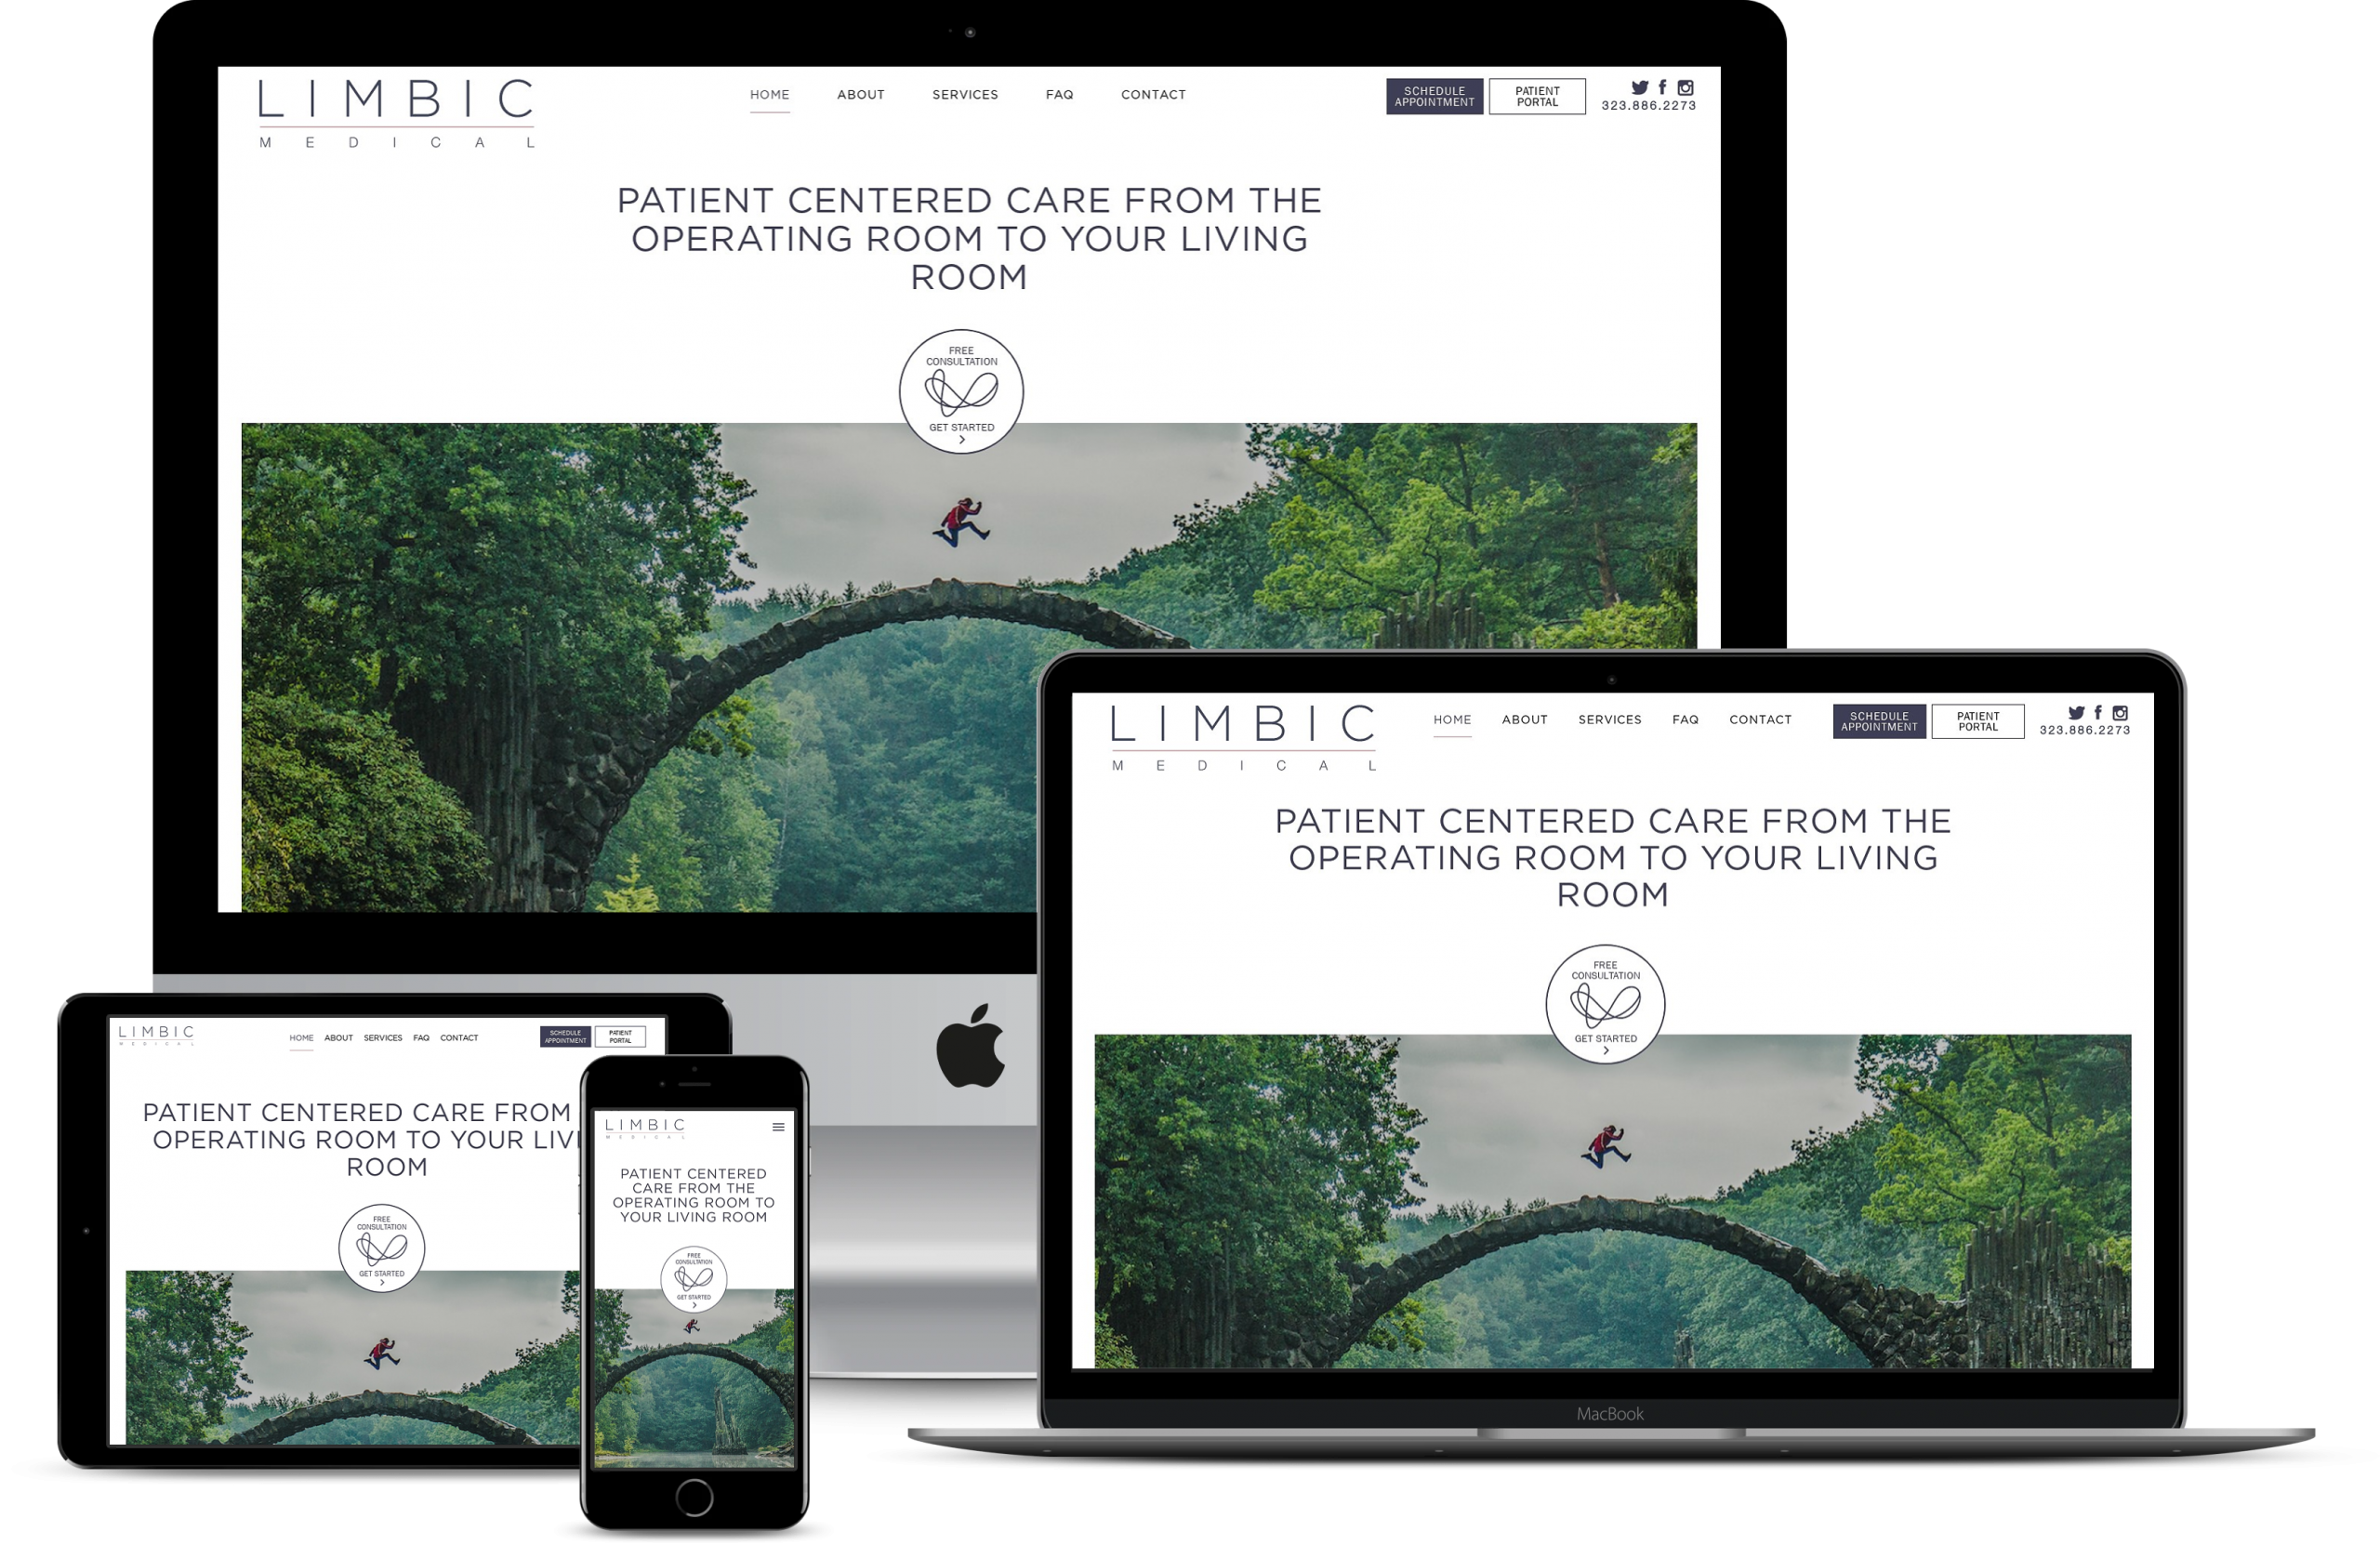 Limbic Medical Responsive Website Design by Bionic Egg Design 2020